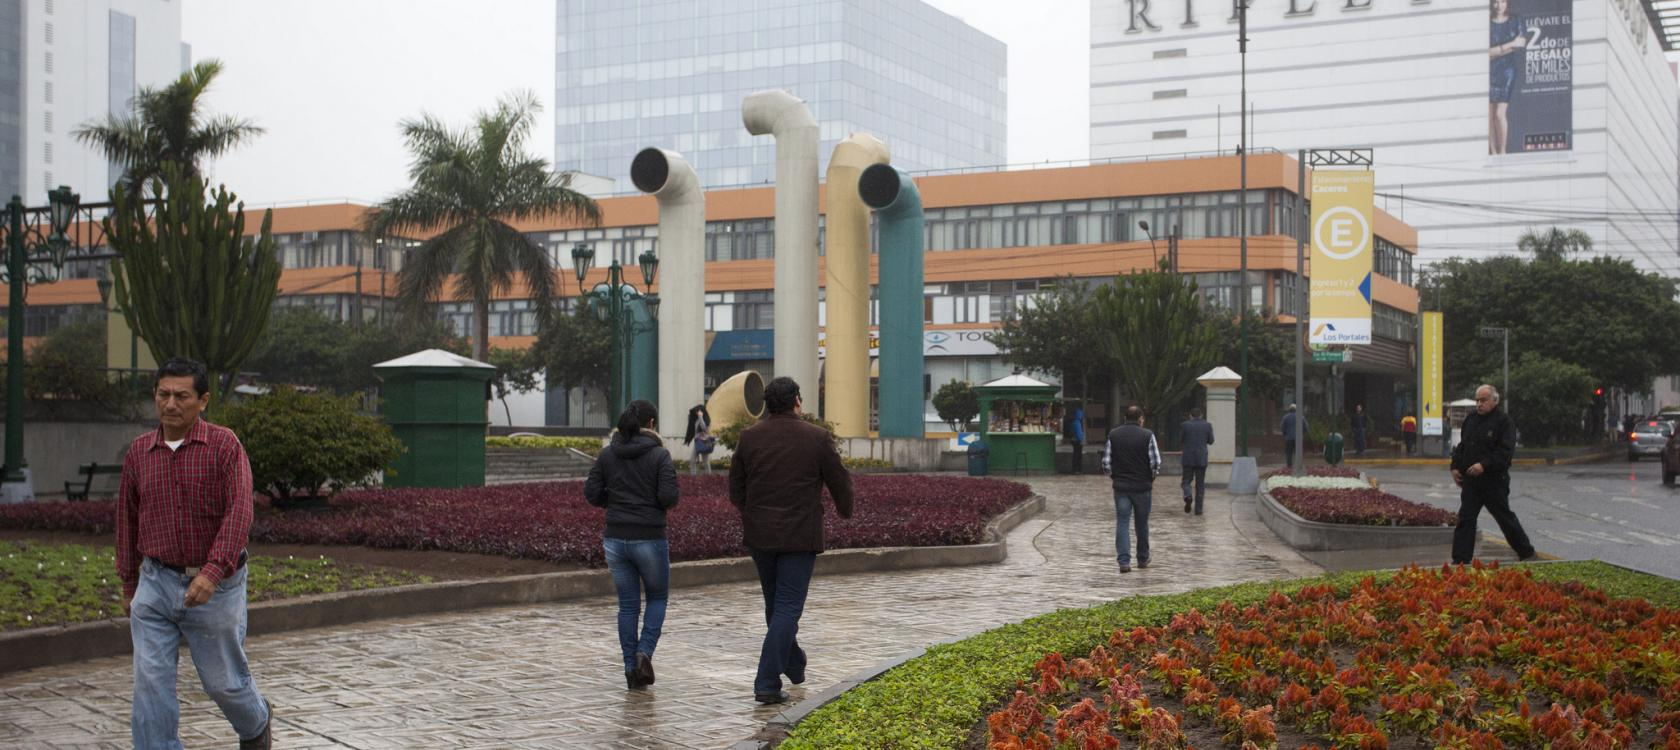 Daily life in San Isidro, a financial district in Lima, Peru